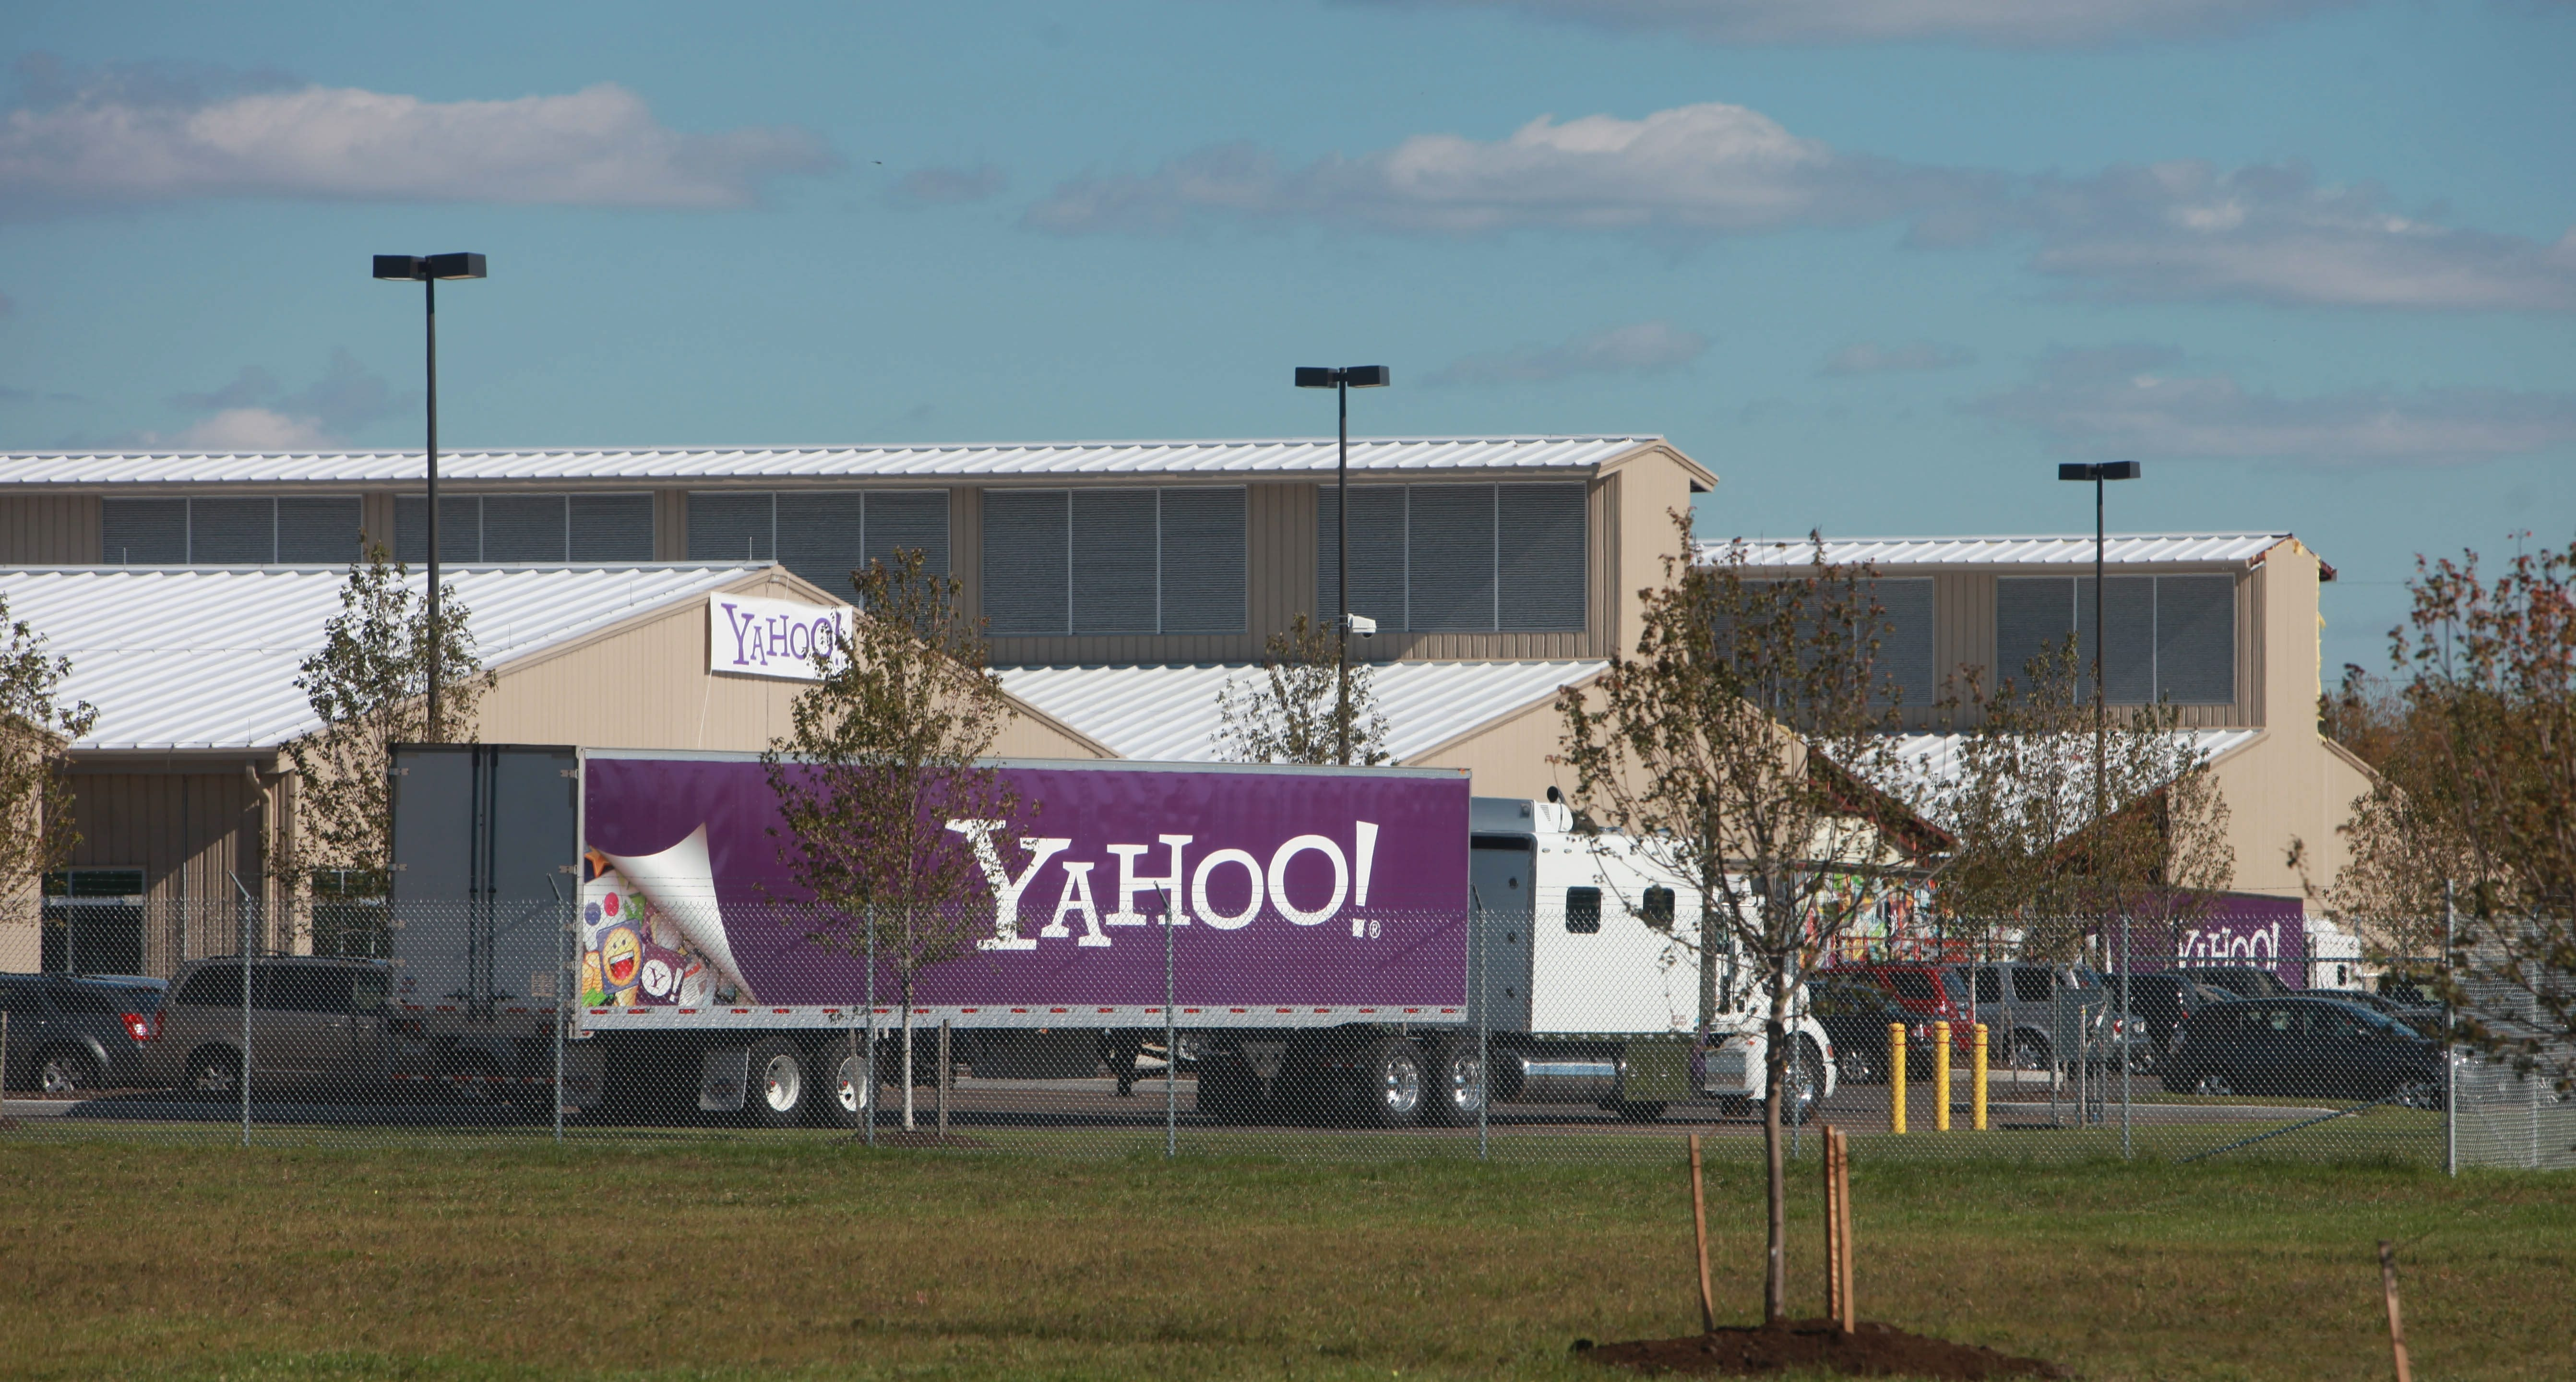 A package of property tax and sales tax abatements that will save Yahoo more than $30 million over the next 20 years was unanimously approved today by the Town of Lockport Industrial Development Agency. (Buffalo News file photo}